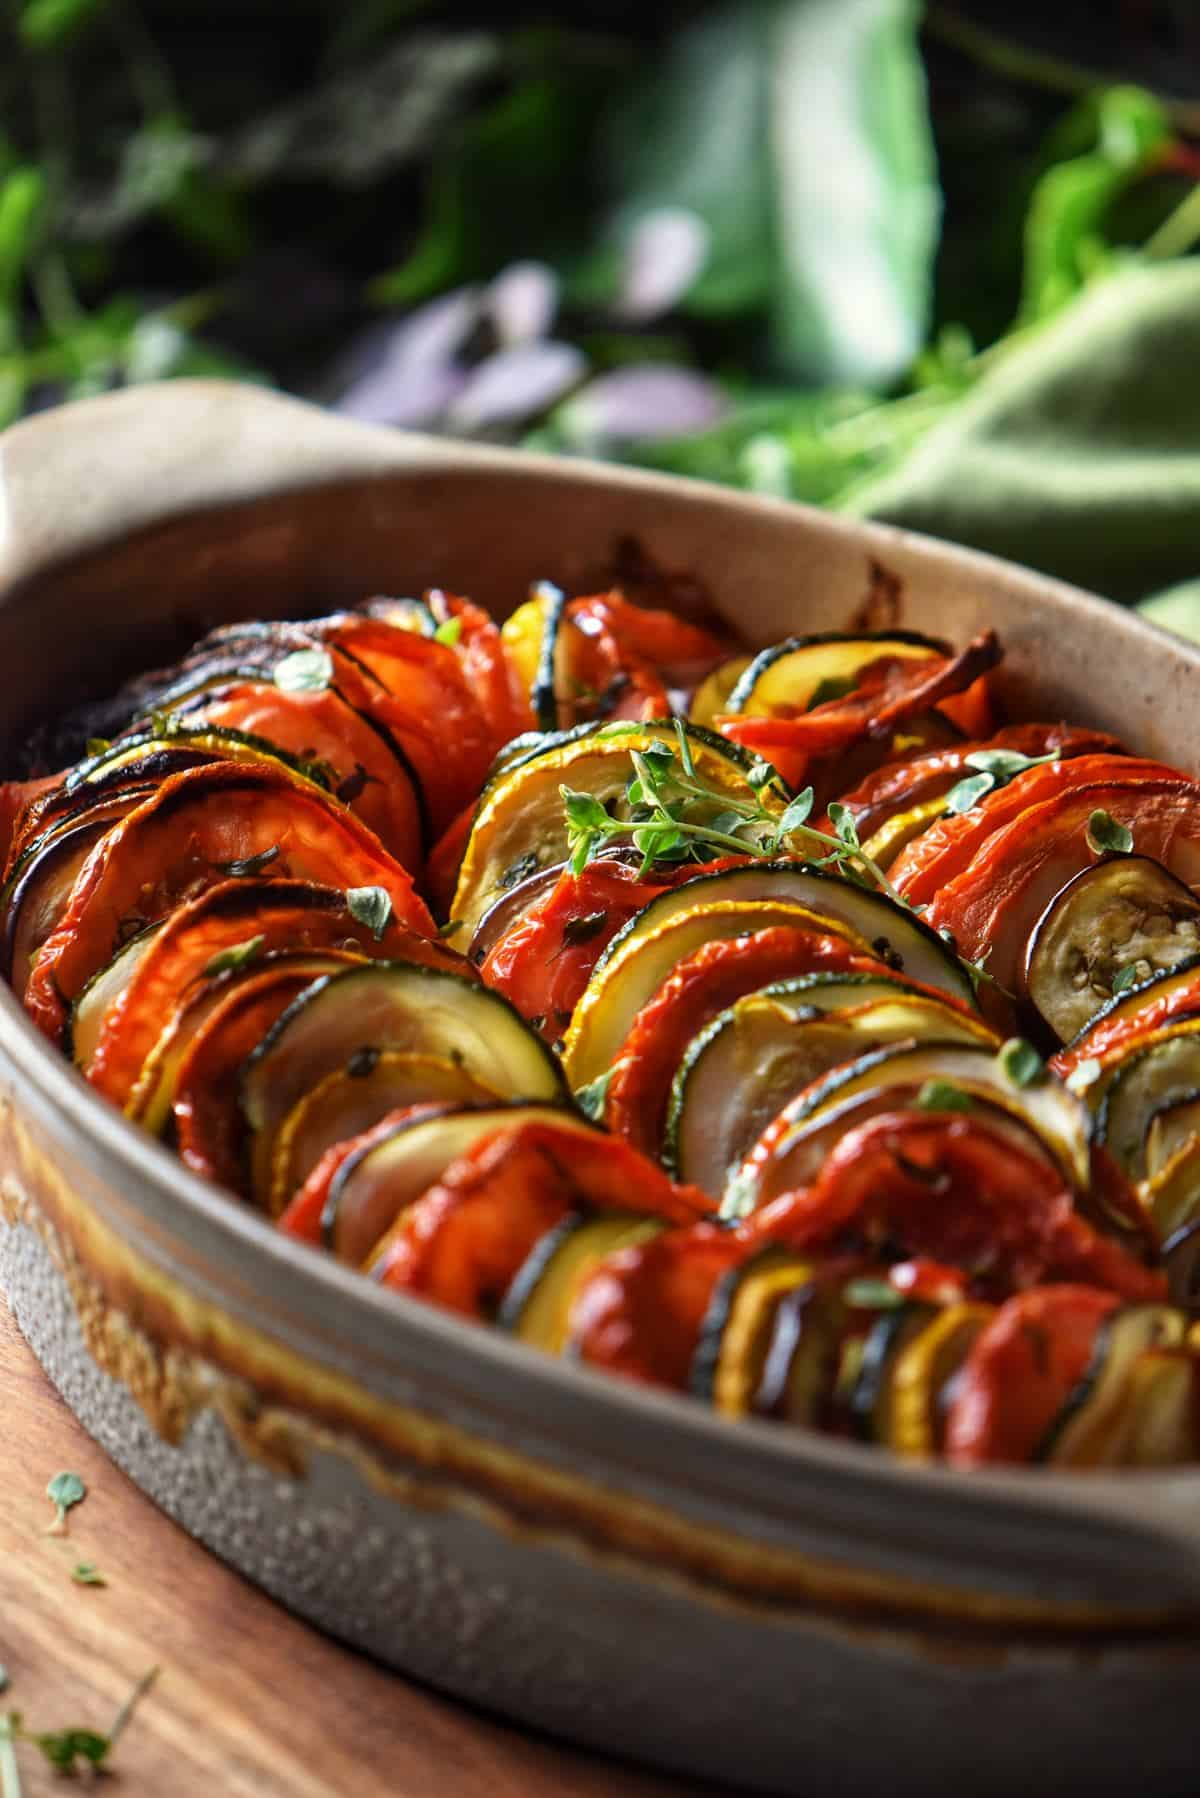 An overhead shot of Mediterranean Roasted Vegetables includes roasted peppers, eggplant, zucchini and tomatoes in a white baking dish.